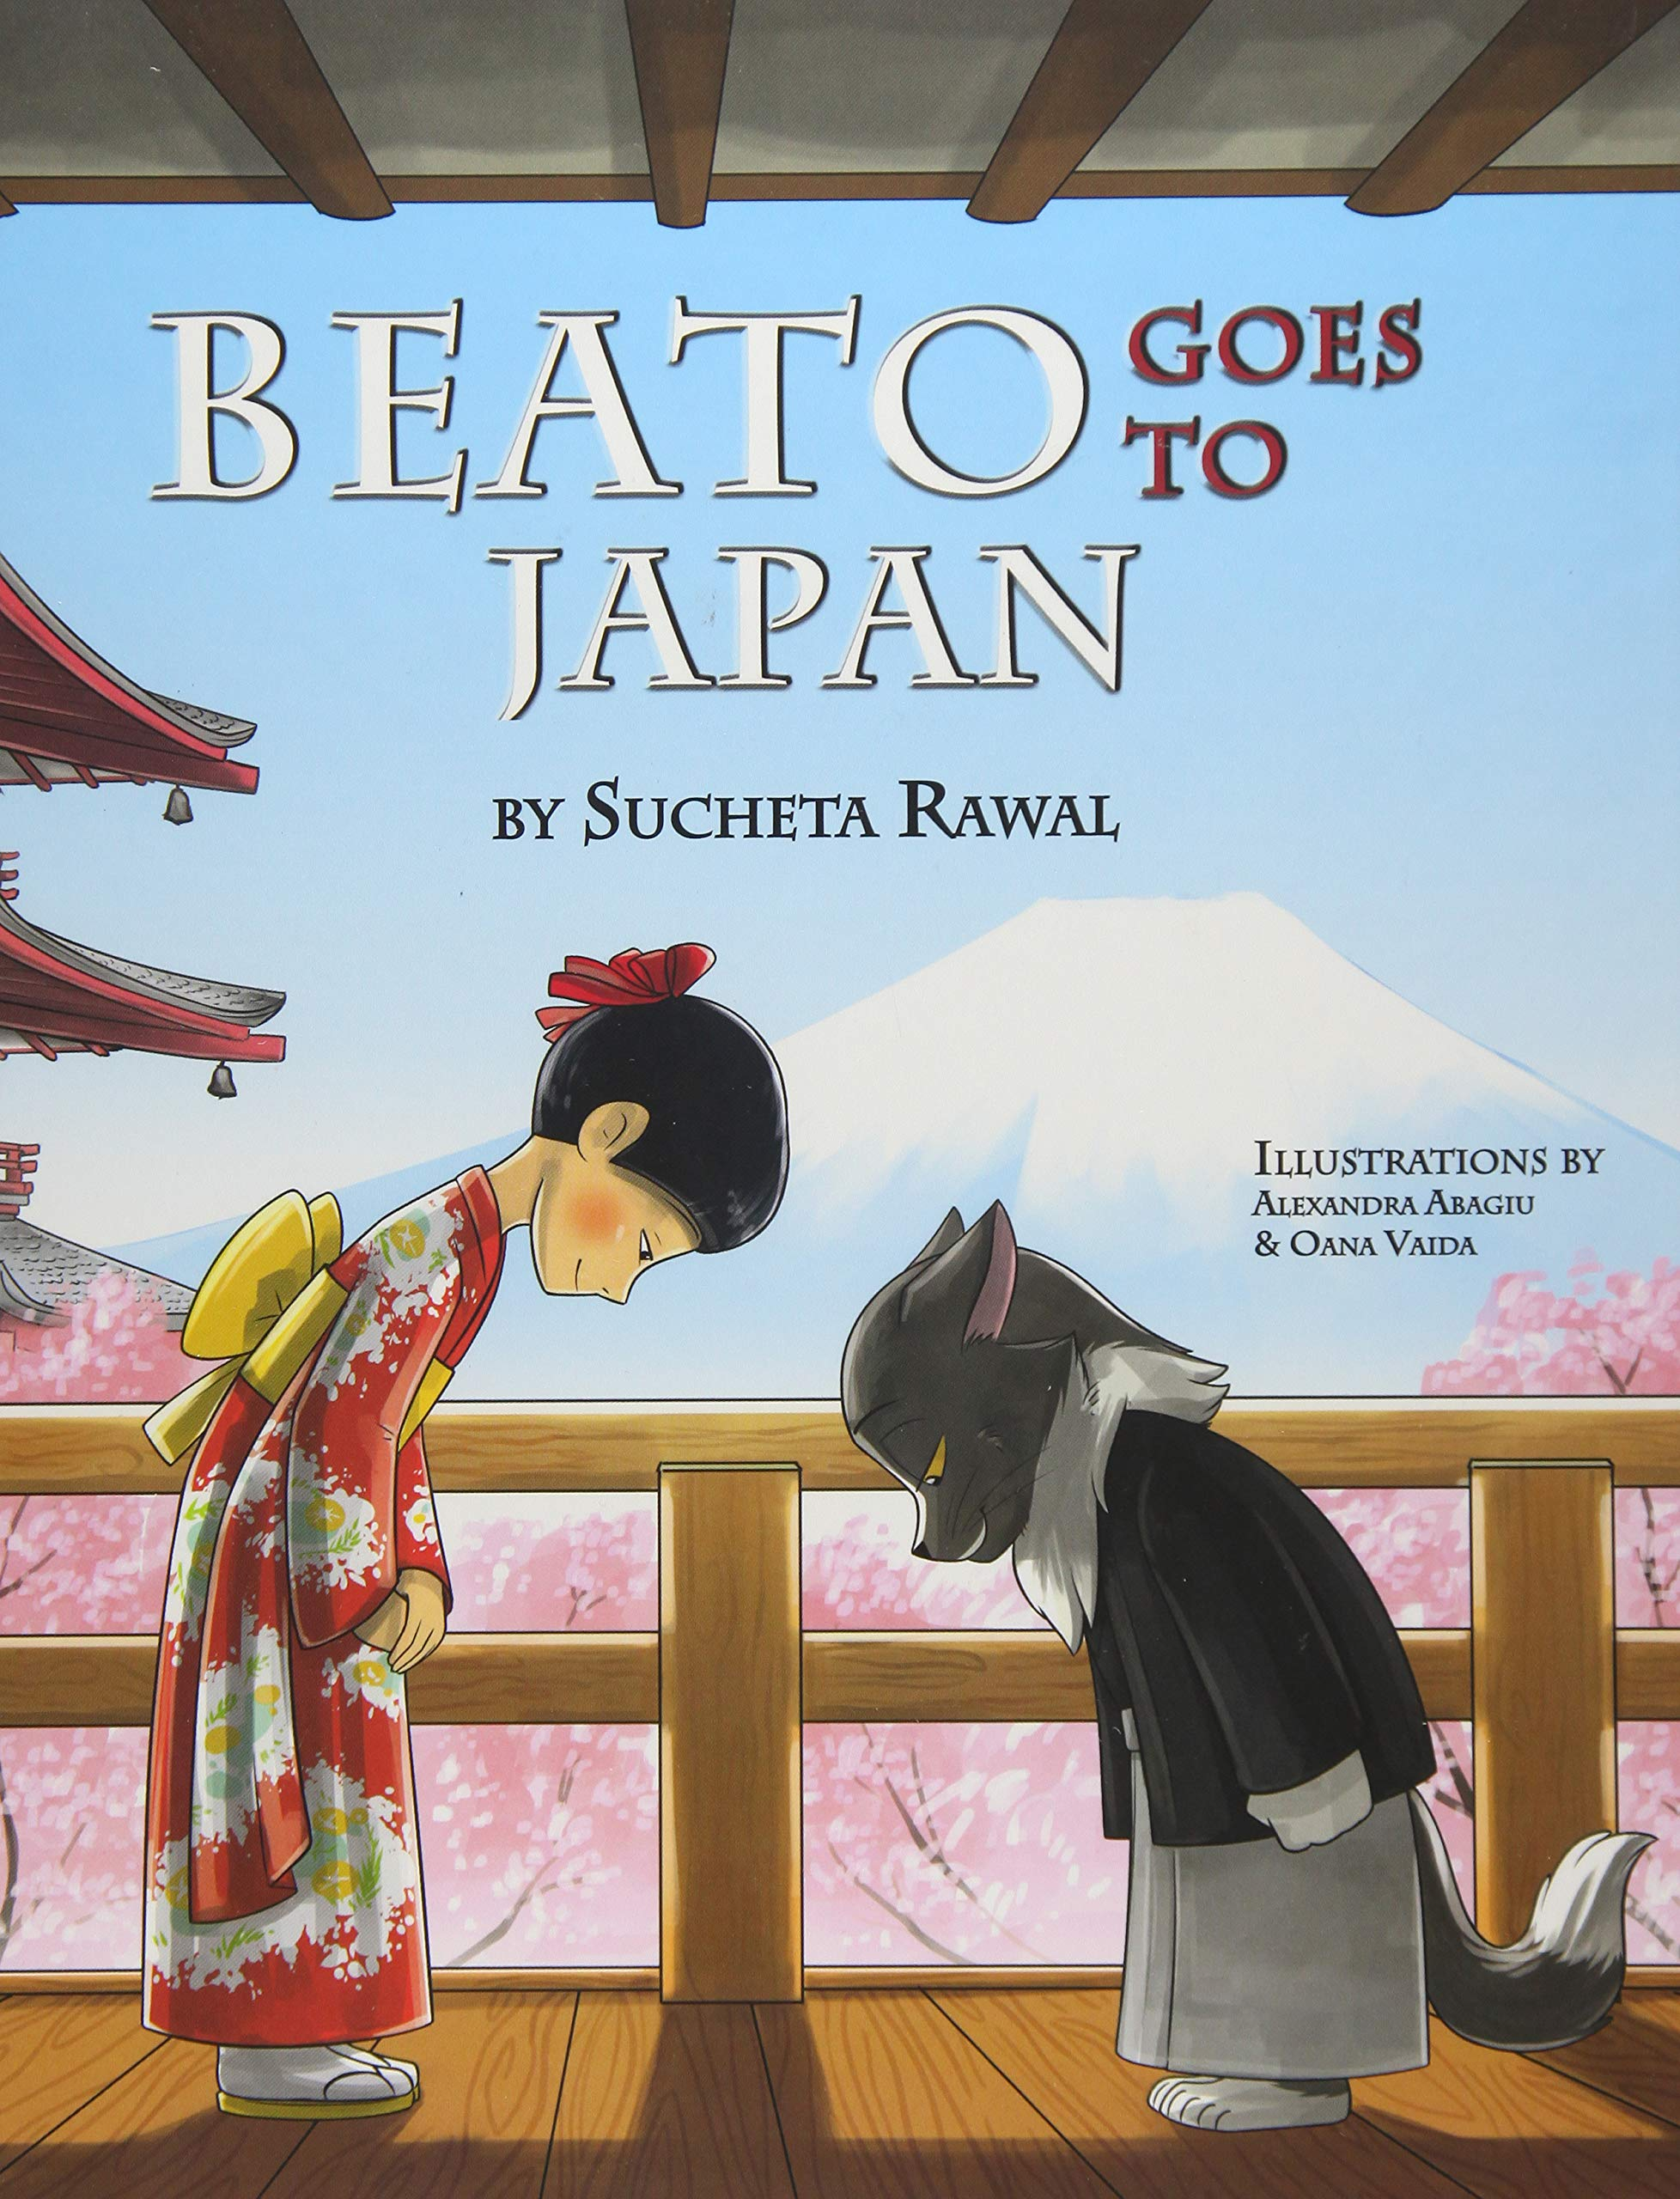 Beato Goes to Japan